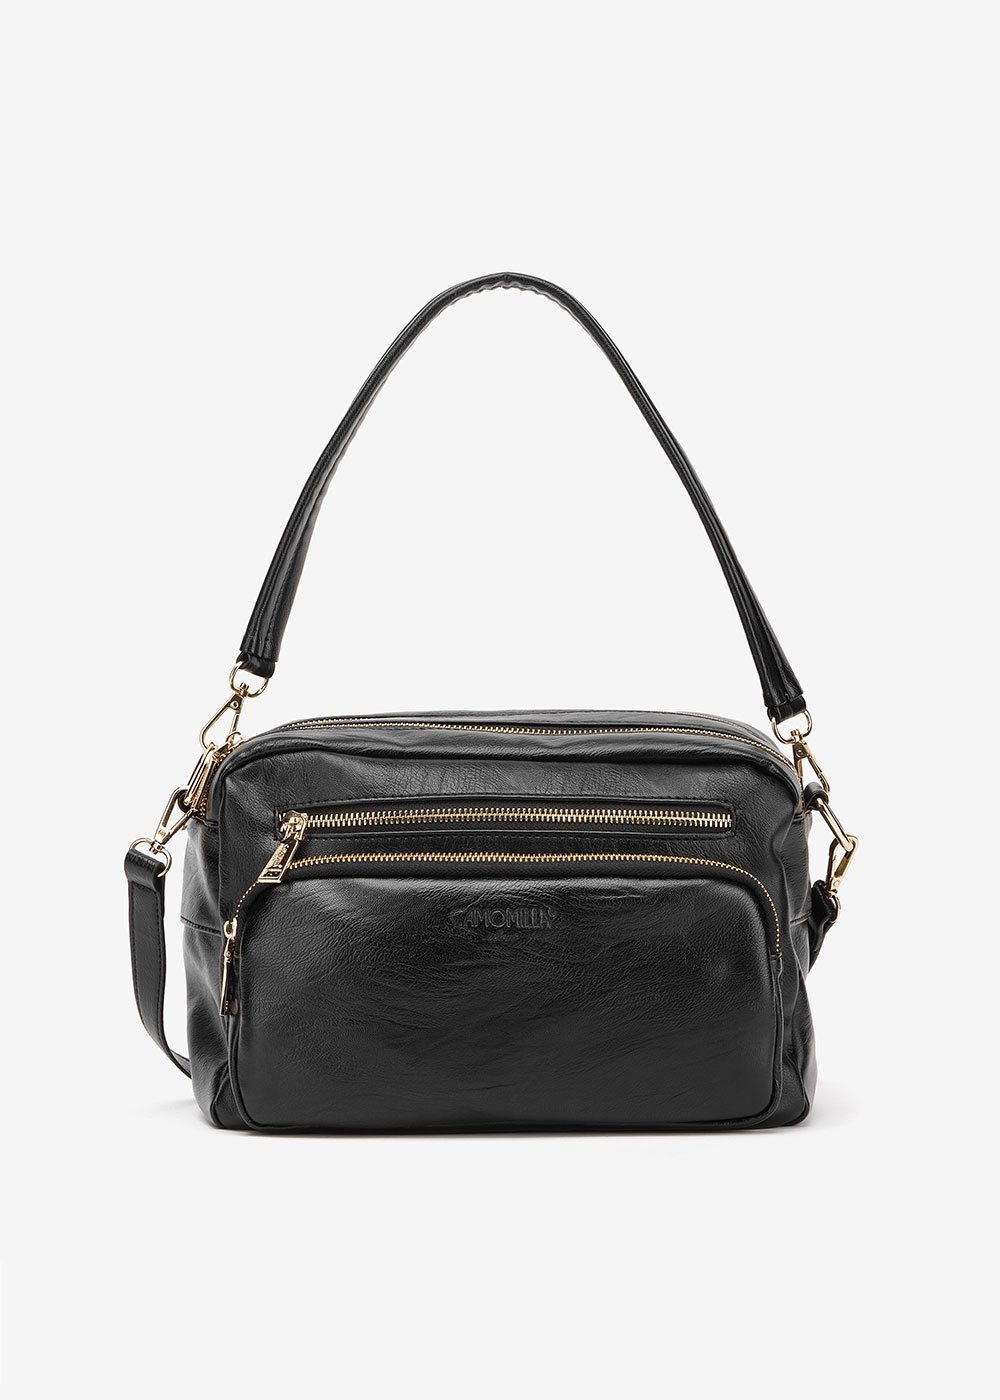 Bauletto Berys multiscomparto - Black - Donna